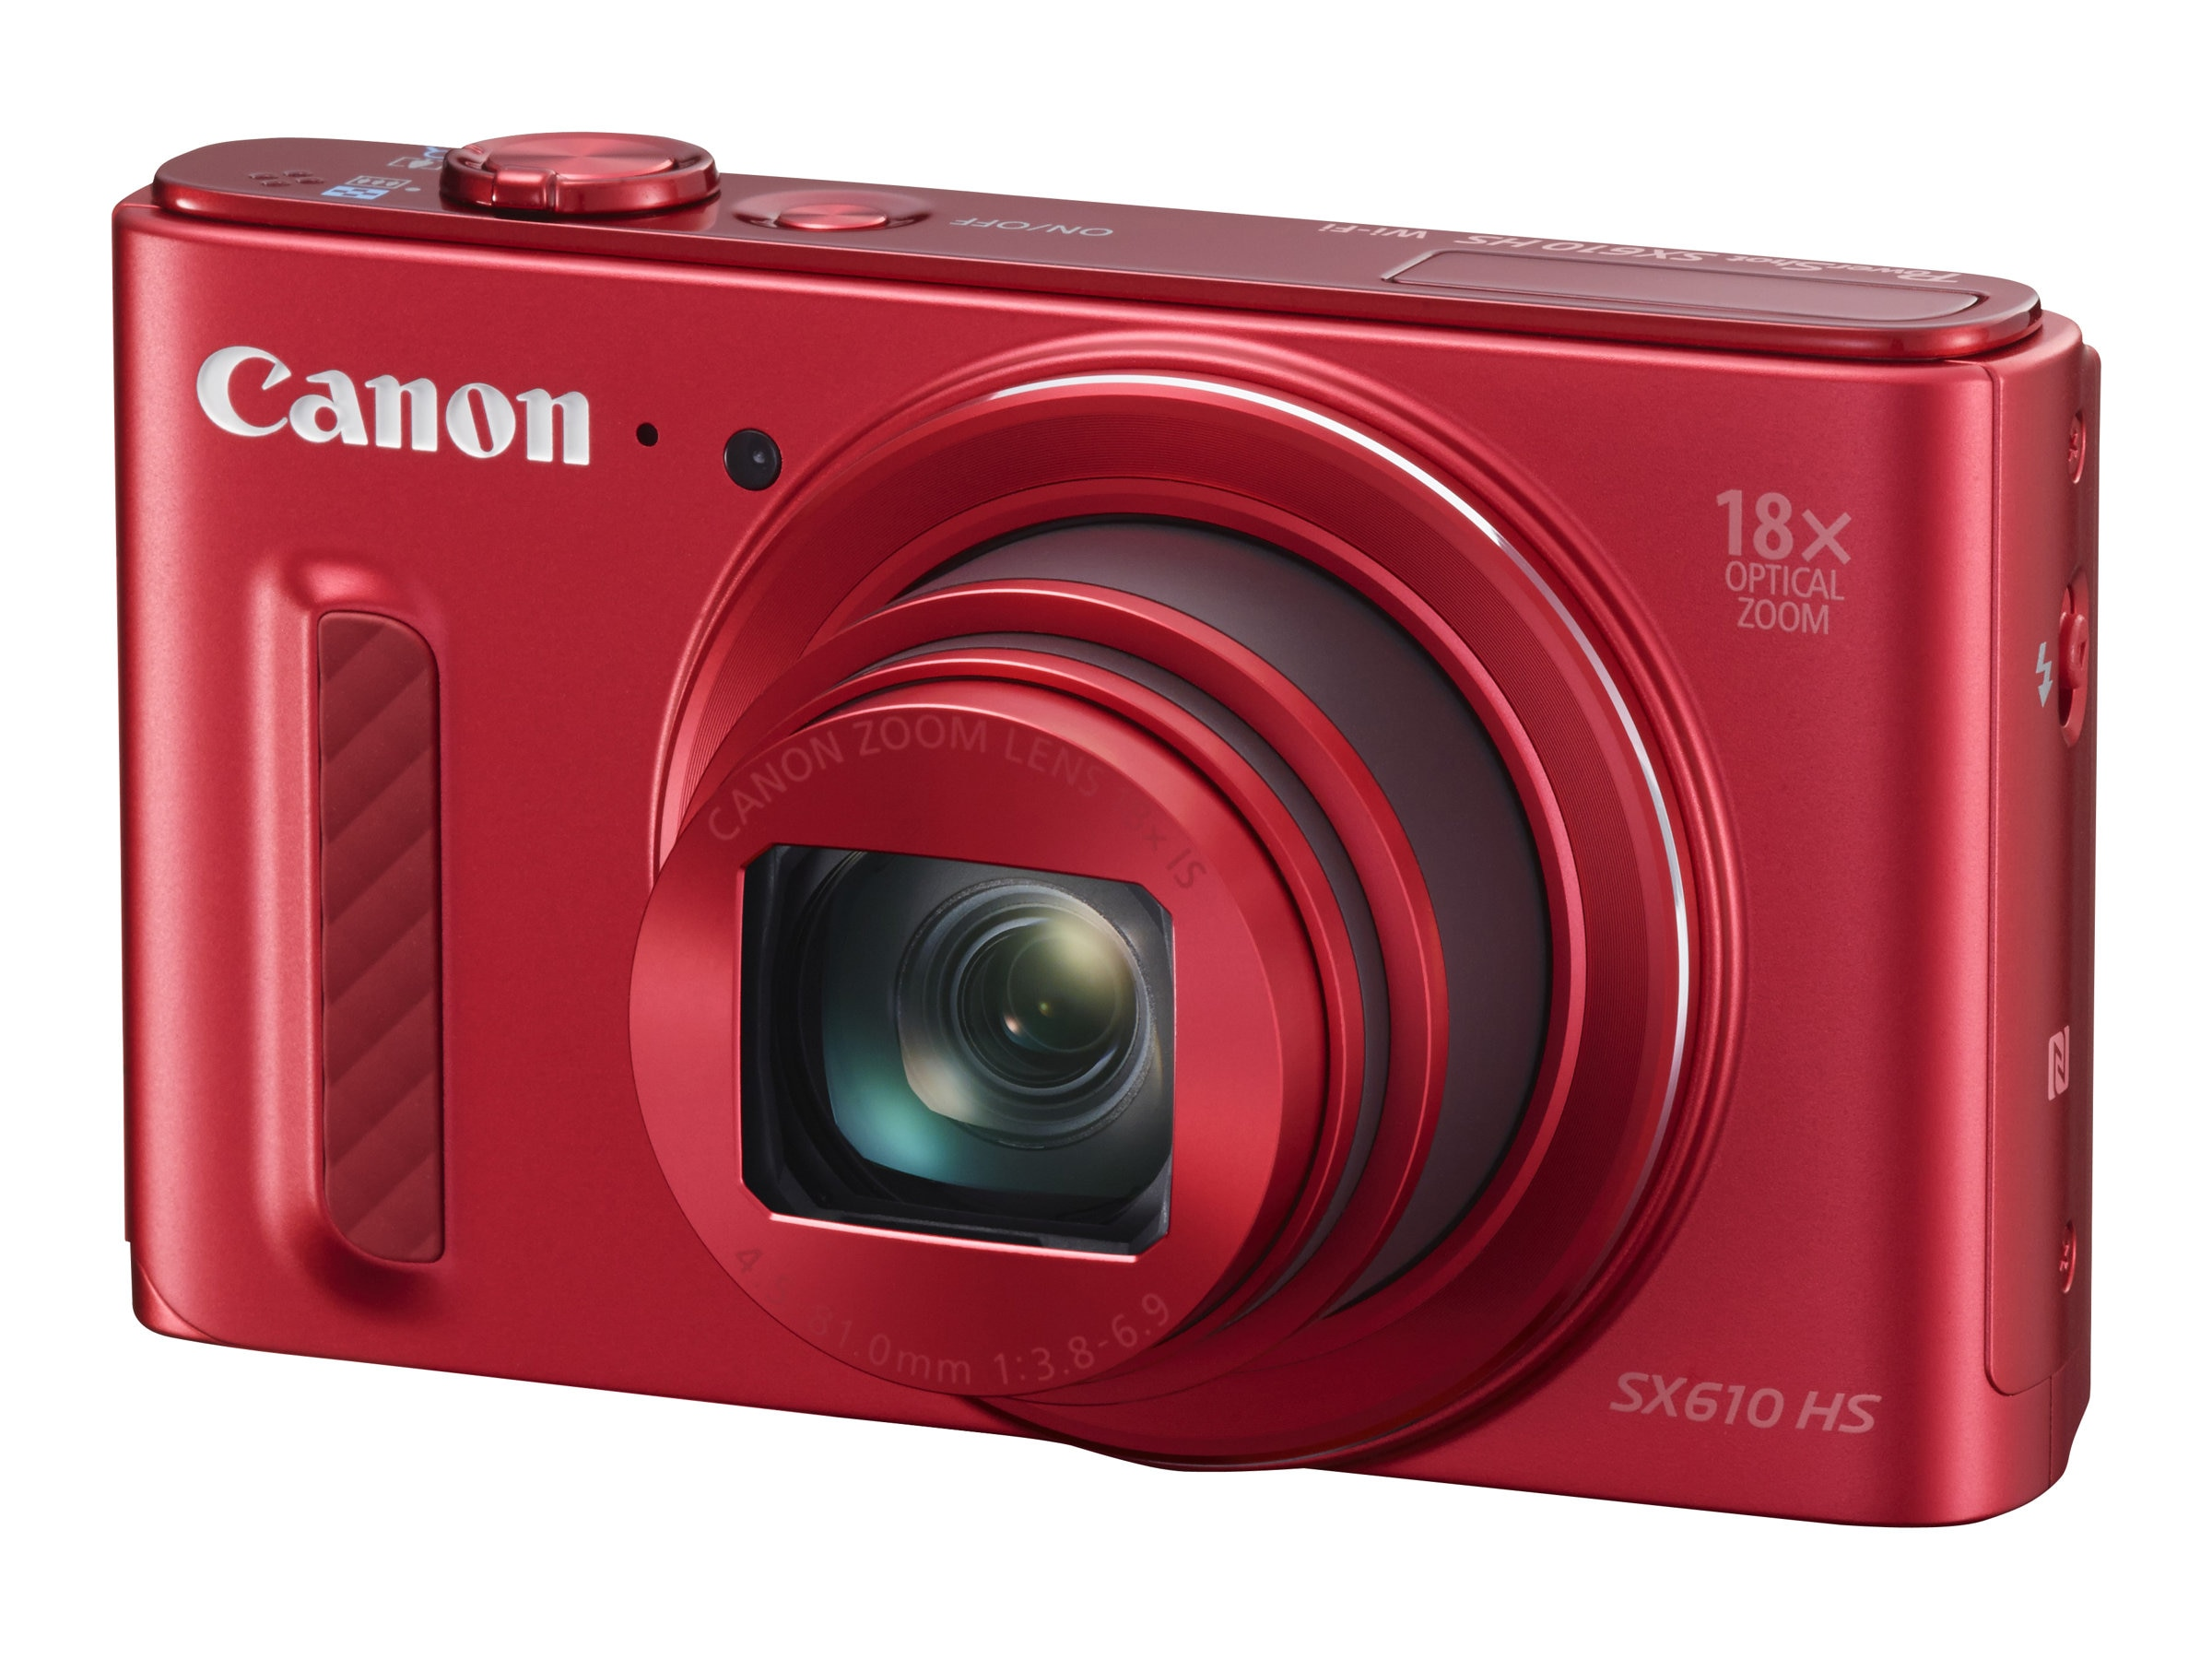 Canon Powershot SX610 HS Camera, 20.2MP, 18x Zoom, Red